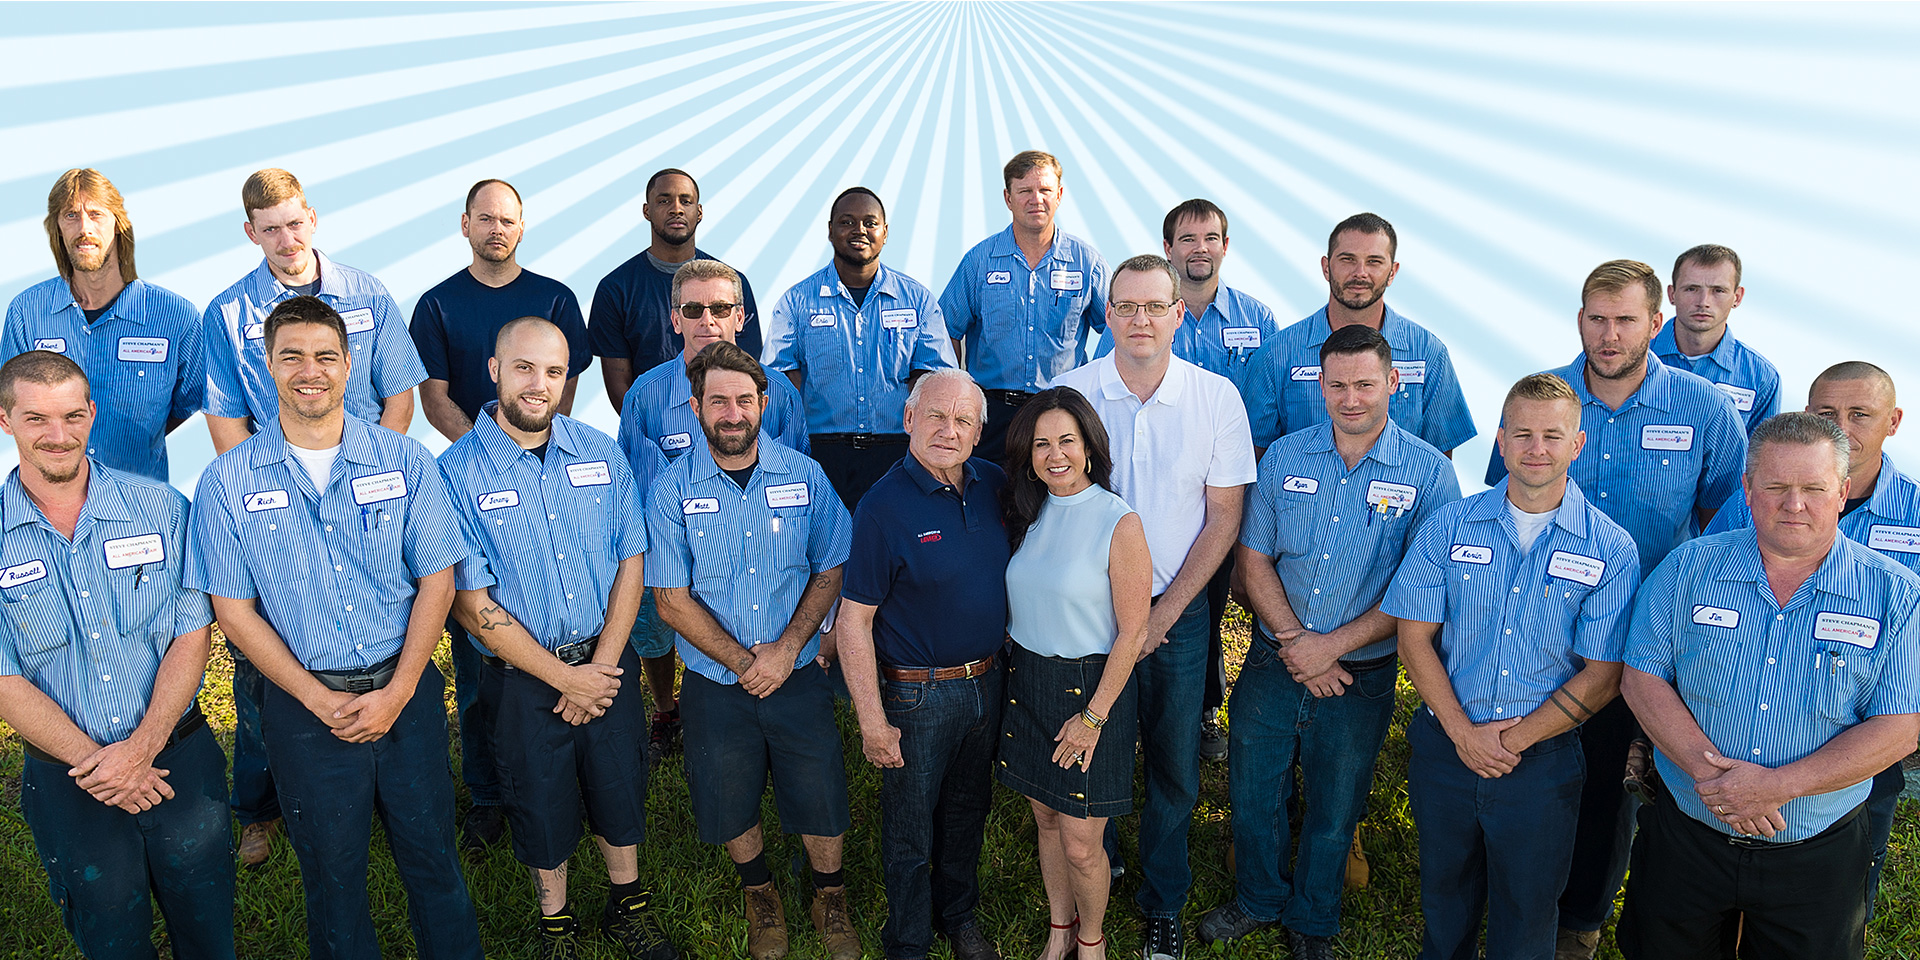 AS THE LARGEST HVAC DEALER IN ST. JOHNS COUNTY WE PROVIDE THE FINEST IN COOLING AND HEATING PRODUCTS. WE PROUDLY SERVICE, MAINTAIN AND REPLACE ALL MAKES AND MODELS. WE HONOR FACTORY WARRANTIES AND OFFER EXTENDED WARRANTIES.